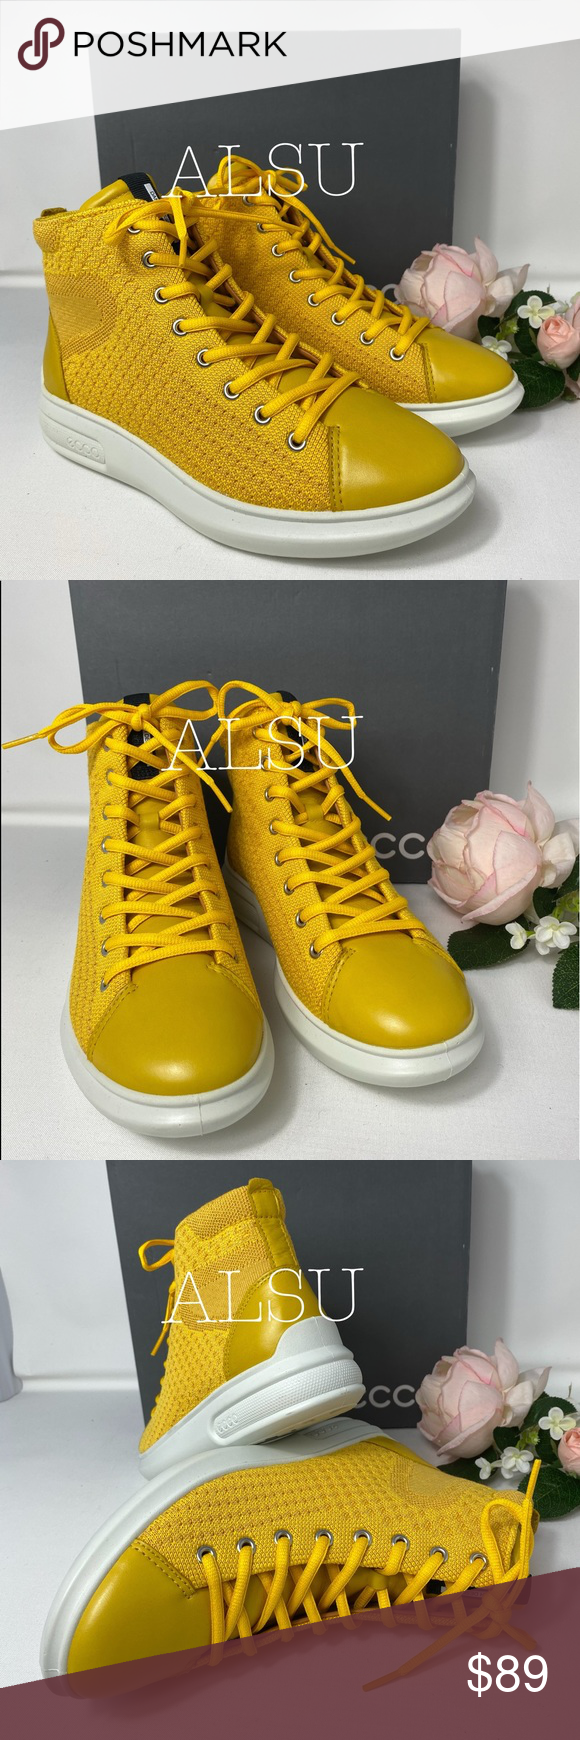 ECCO Soft 3 Canvas High Top Melon 🍈 Yellow W Brand new with box. Price is firm! No trades. 100% Leather/textile Synthetic sole Removable Insole  Th...,#Brand #canvas #leather #melon #price #Trades #yellow